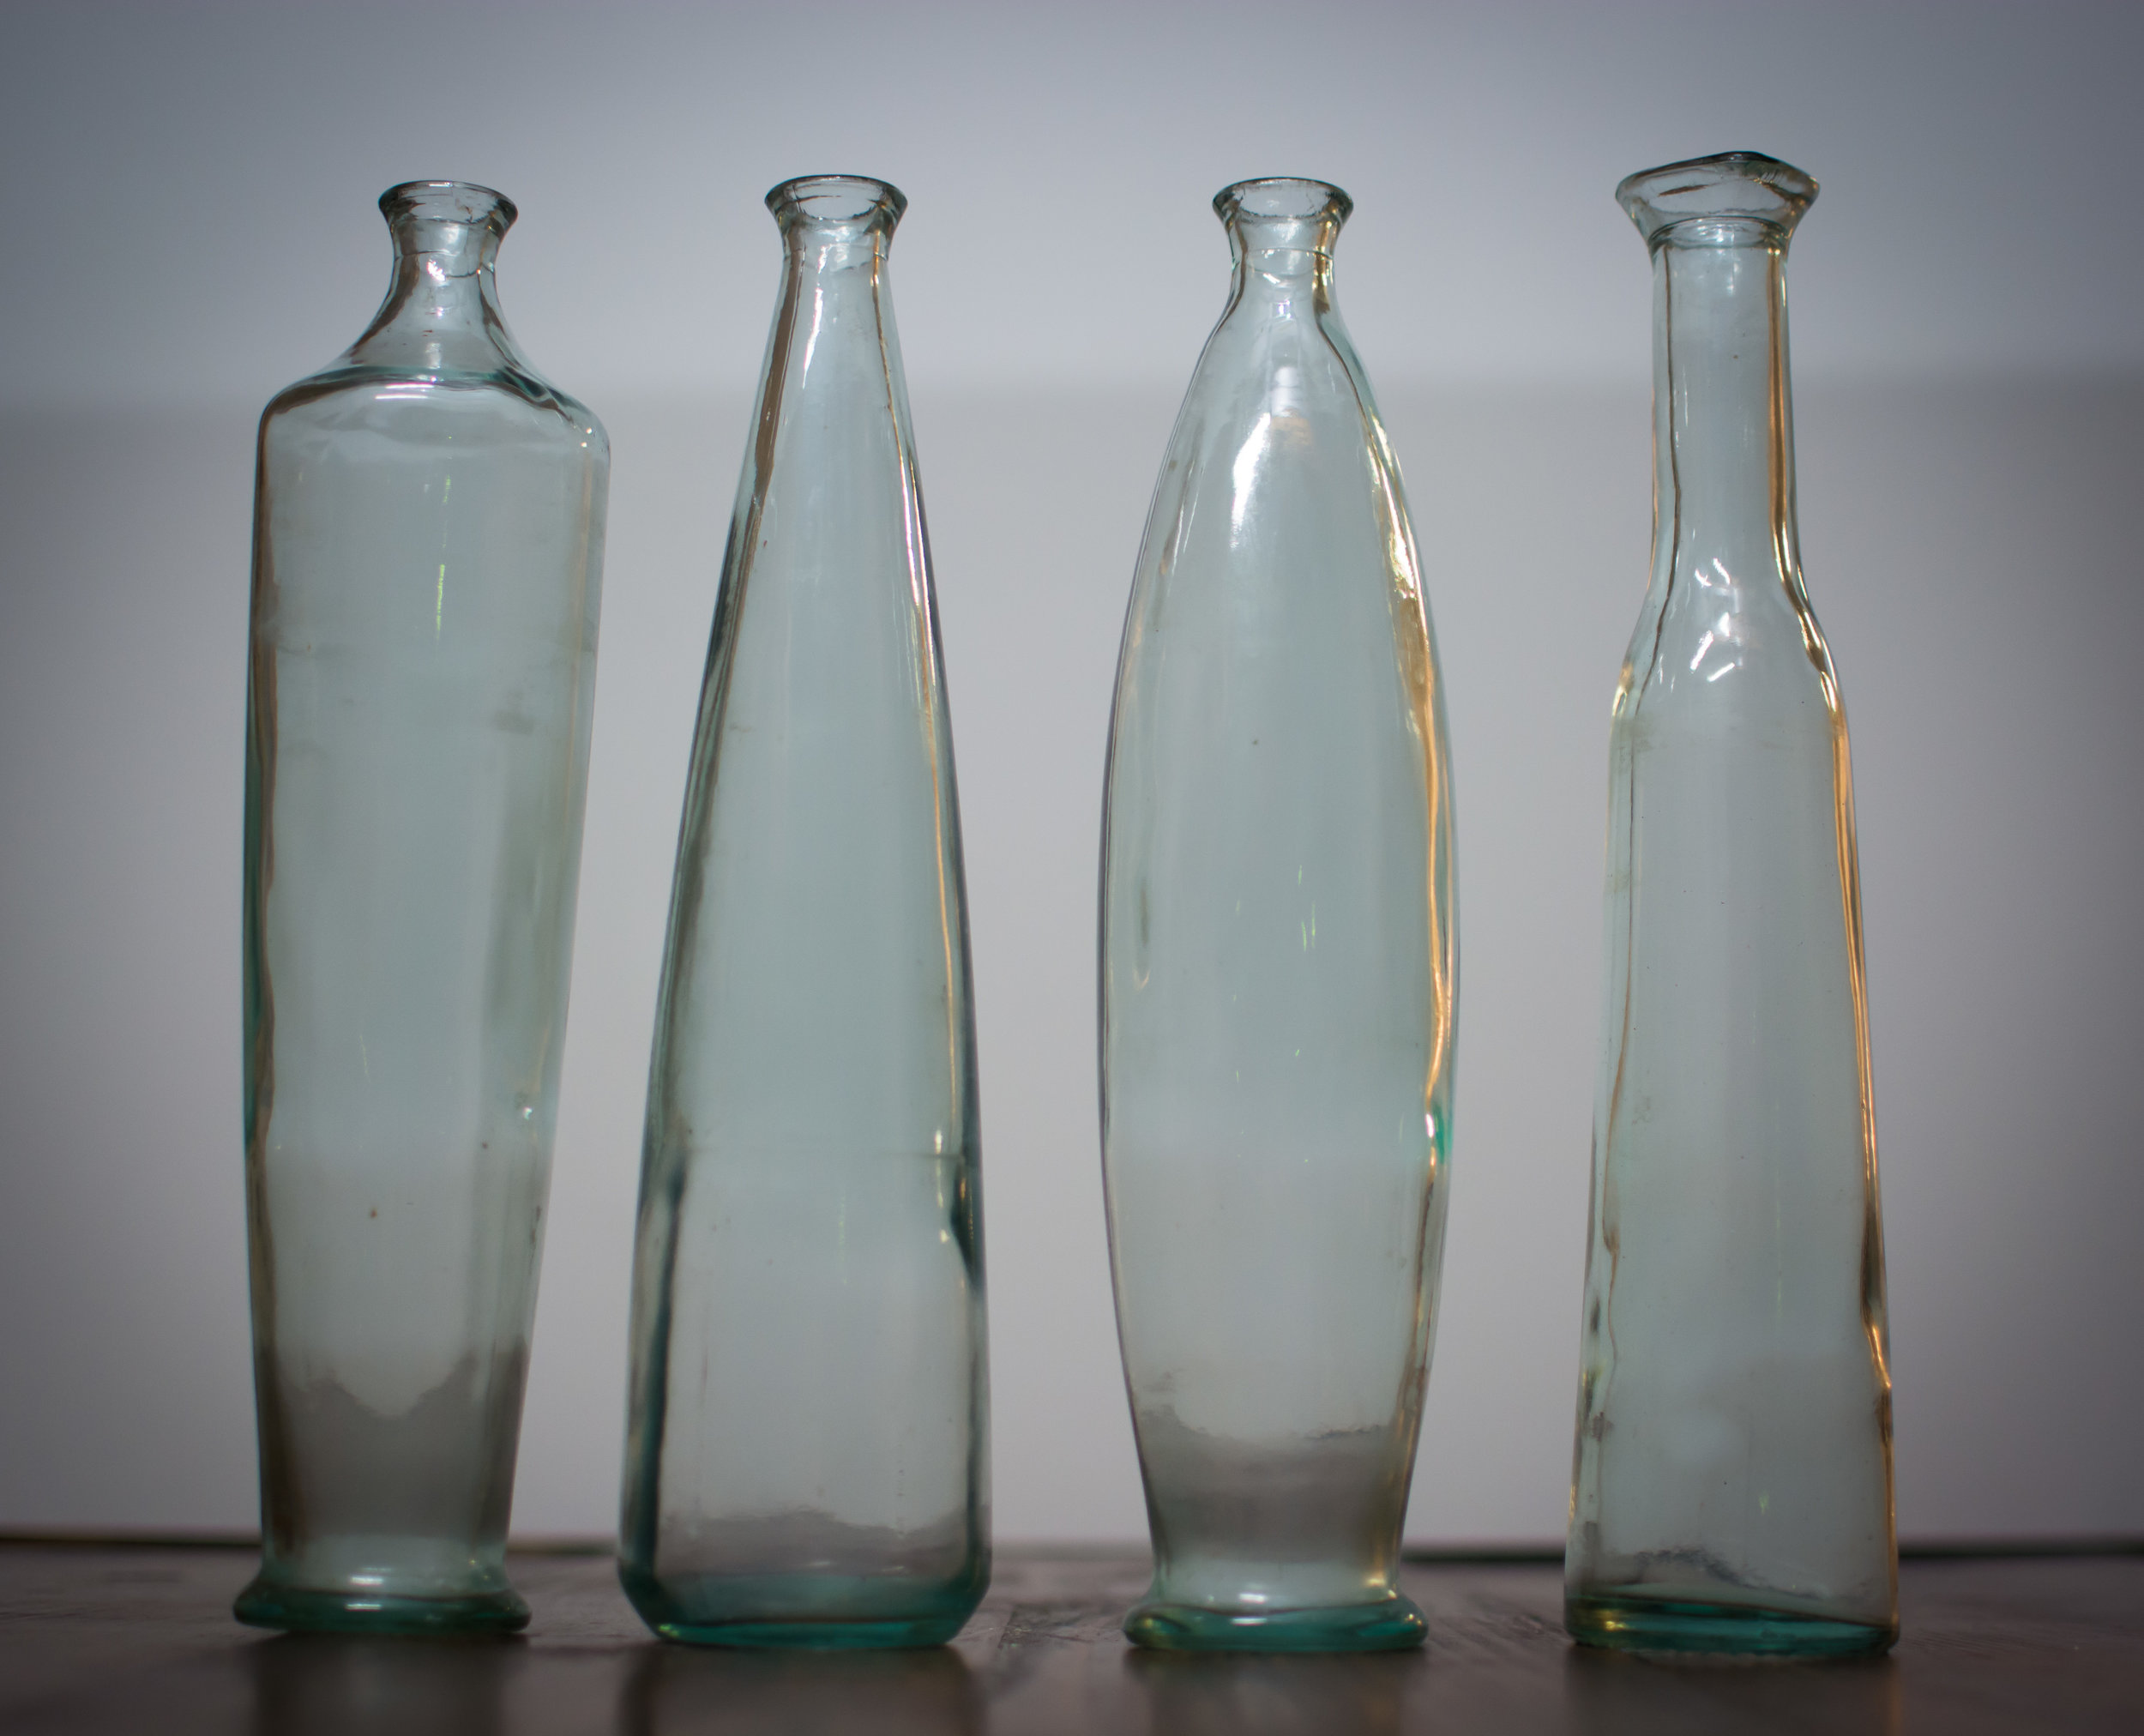 Set of 4 Mismatched blue tint vases   height-  Price: $12 set/ $3.00 each  Inquire about quantity and availability.